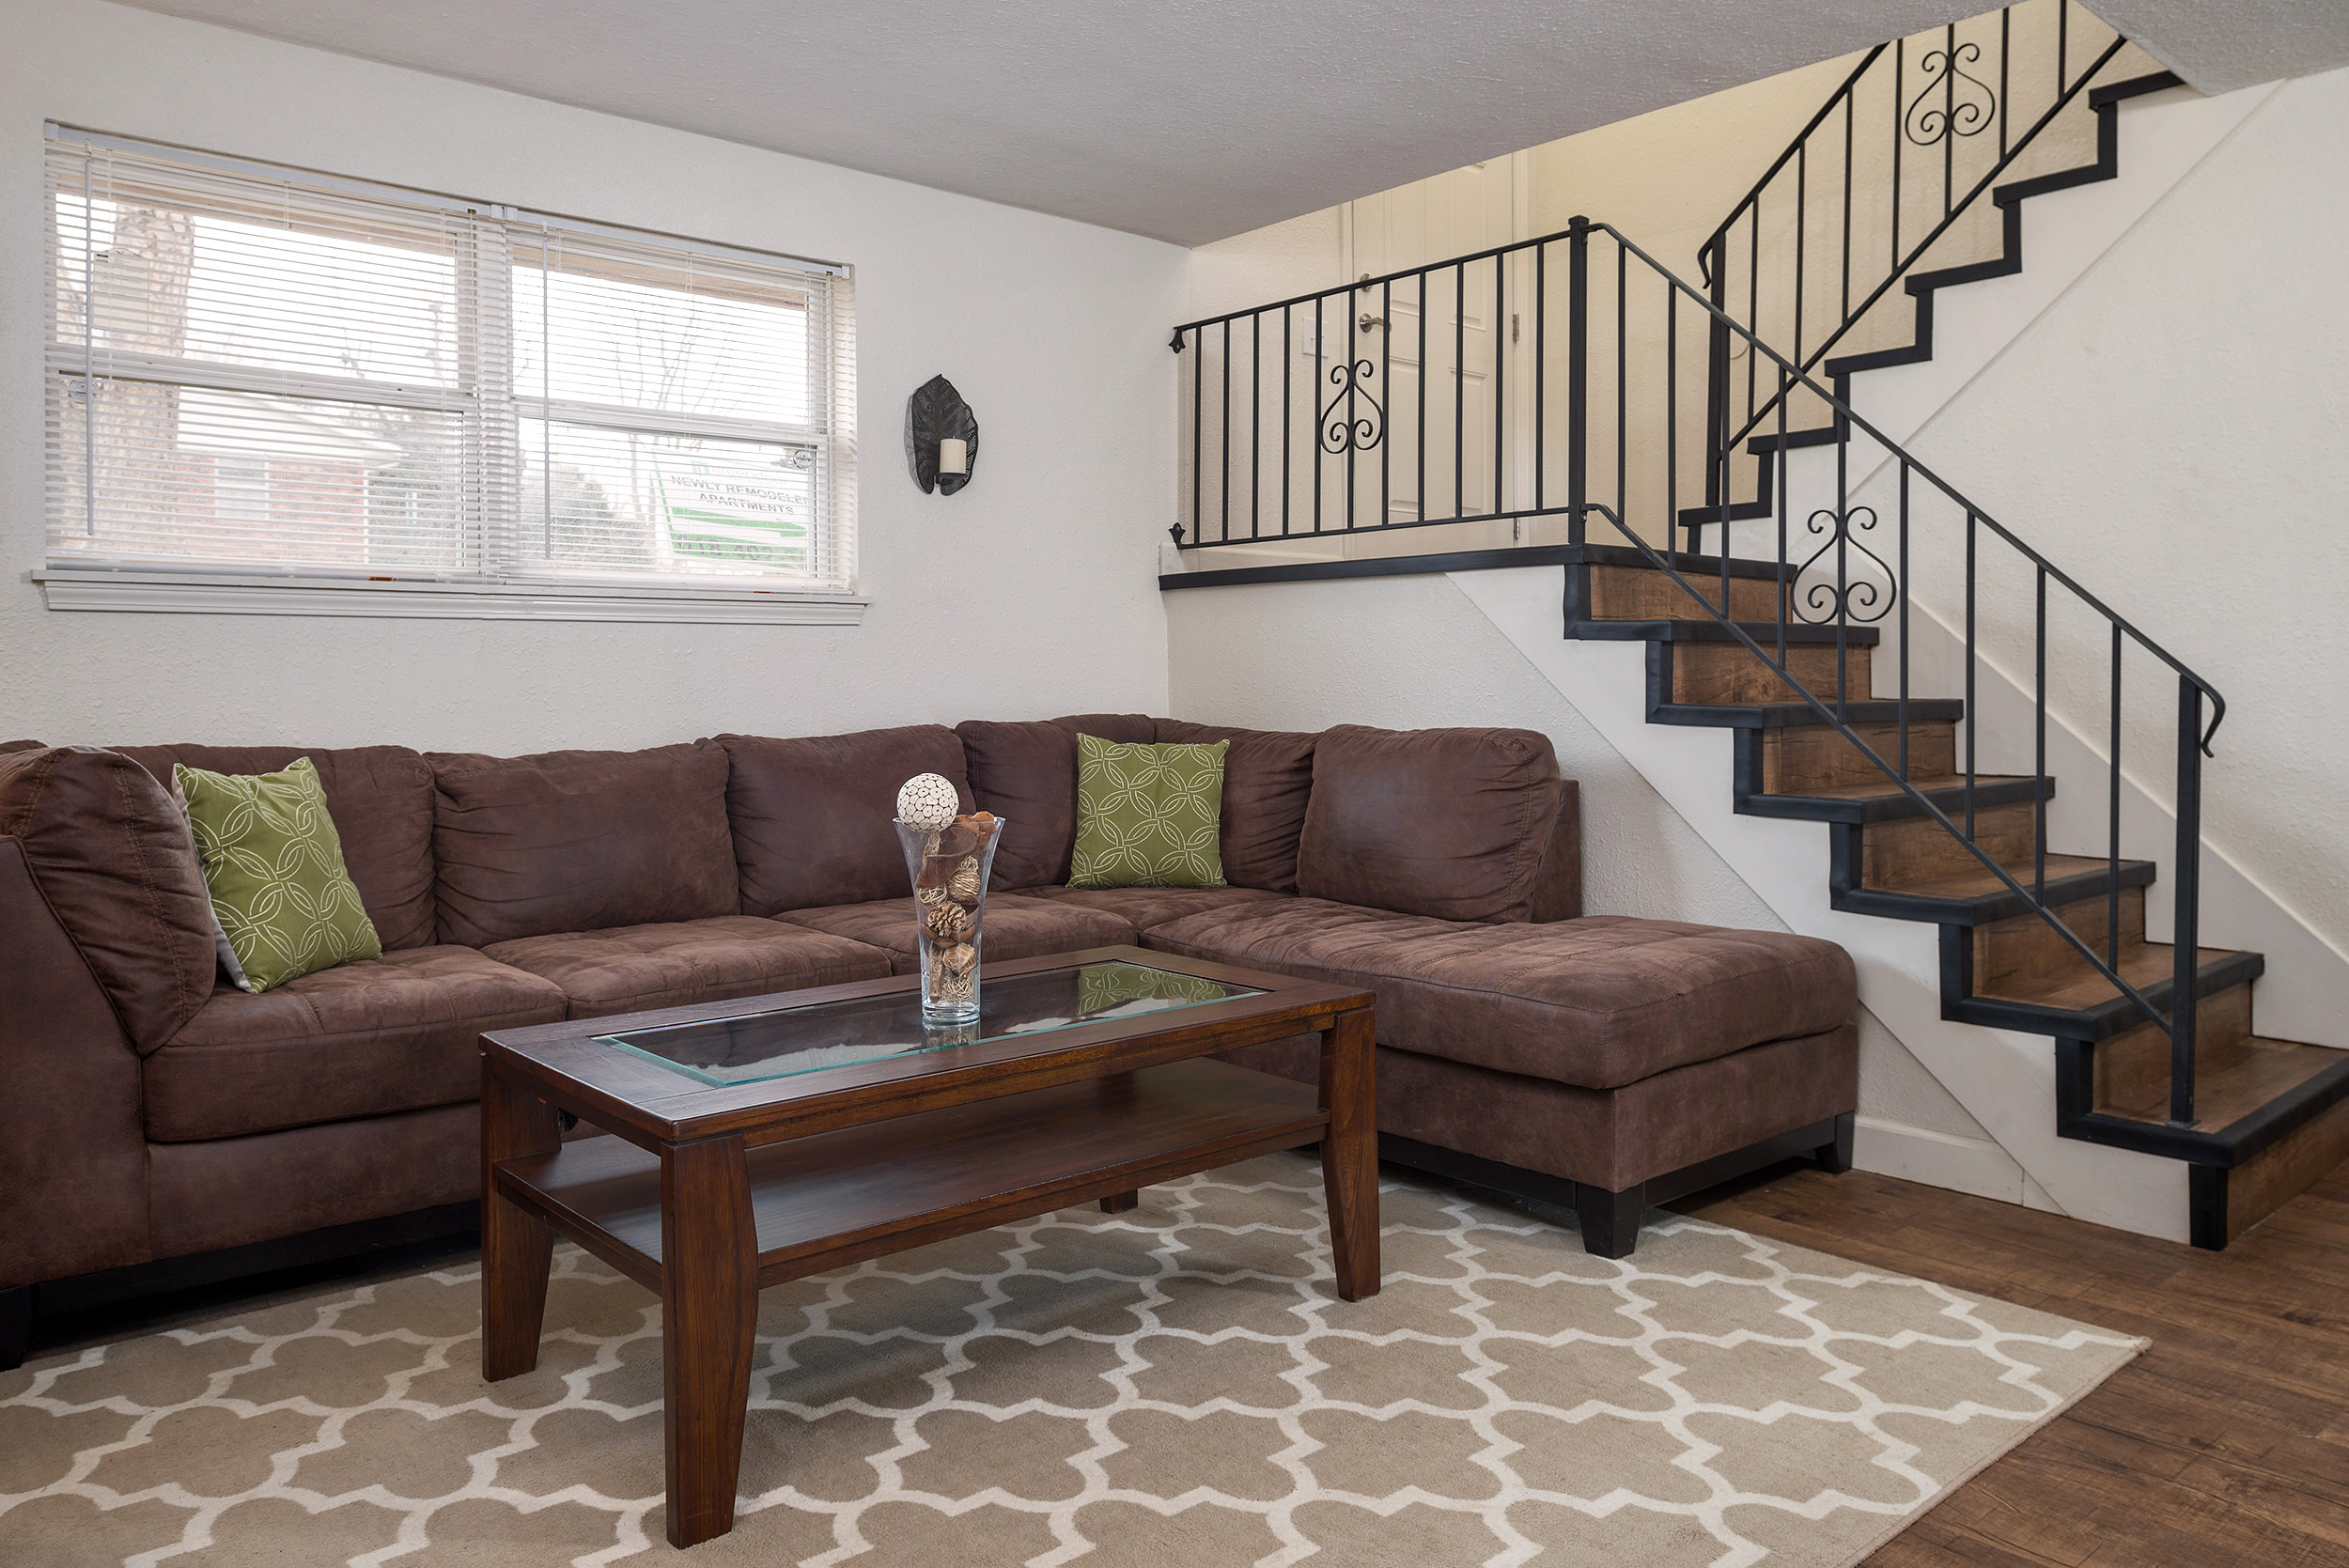 Belleville apartments apartments for rent near swic - One bedroom apartments in belleville il ...